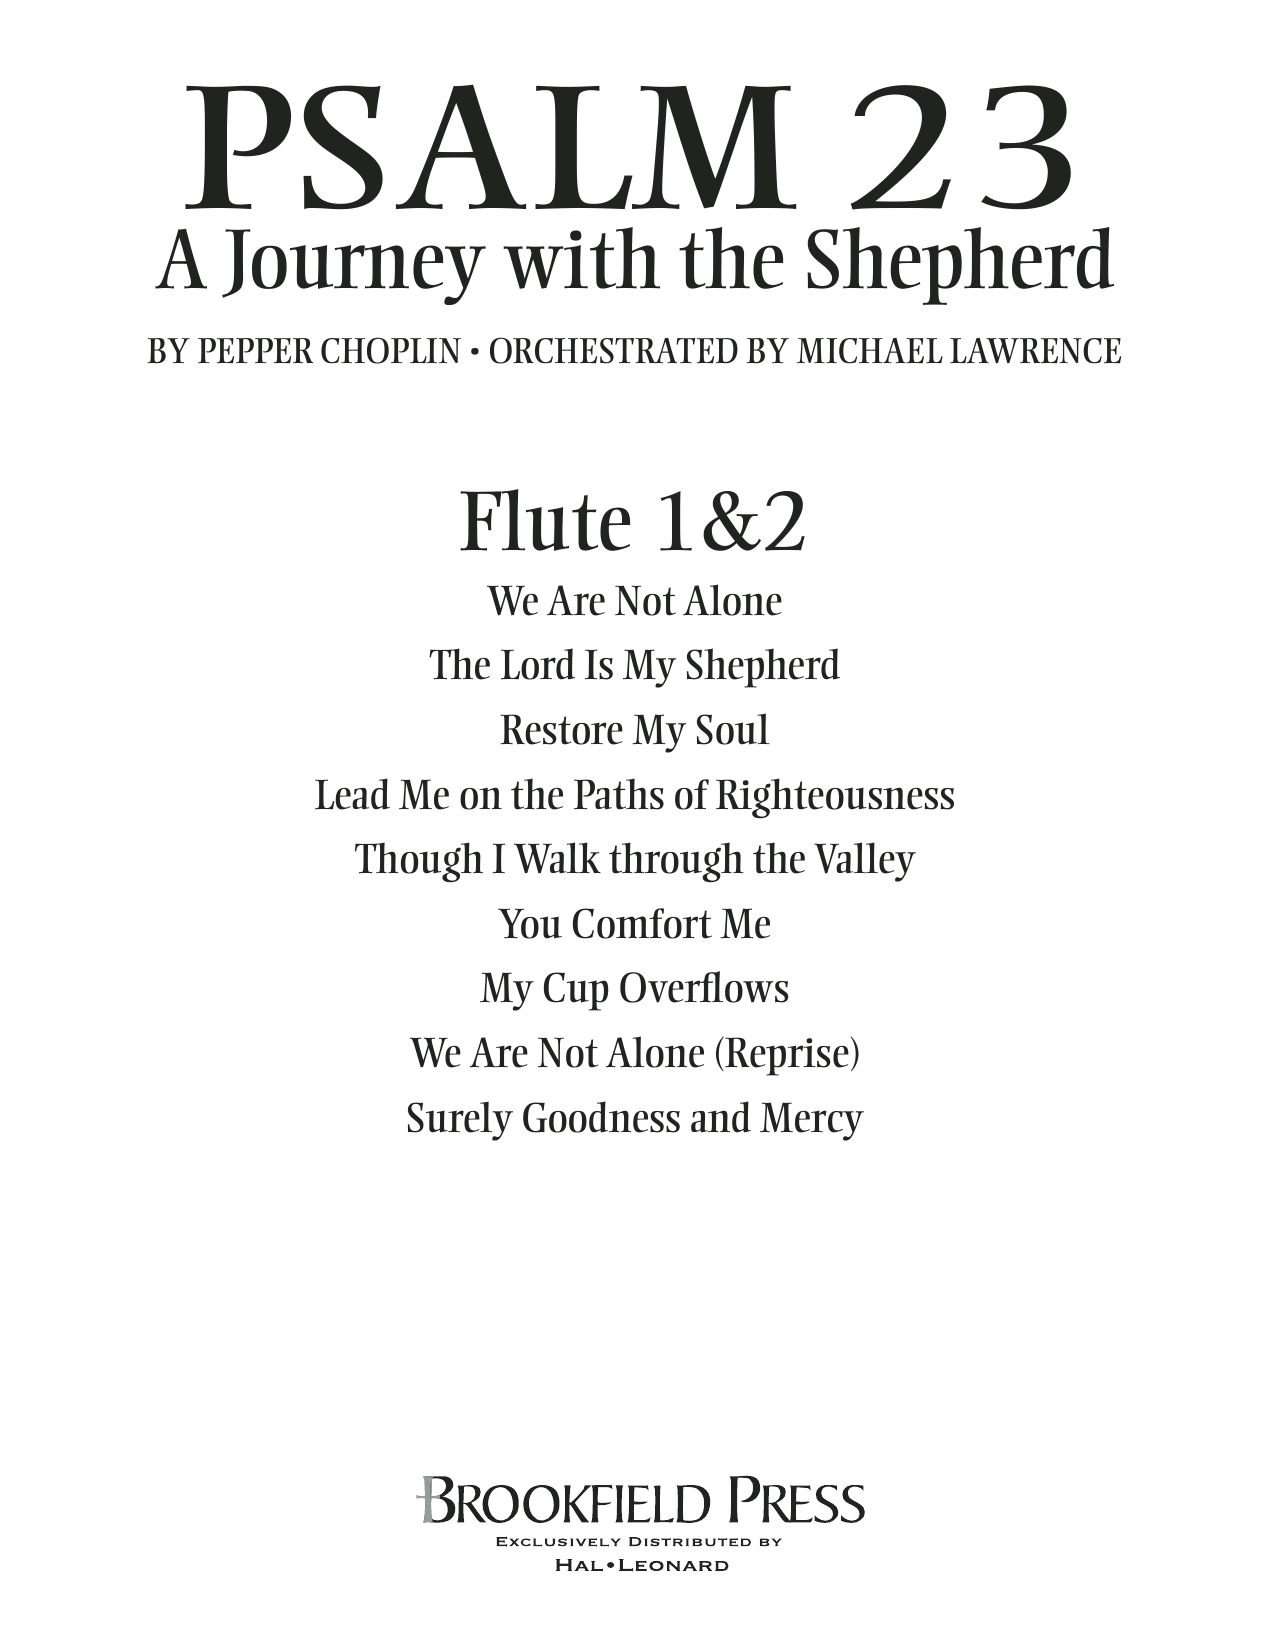 Psalm 23 - A Journey With The Shepherd - Flute 1 & 2 Sheet Music